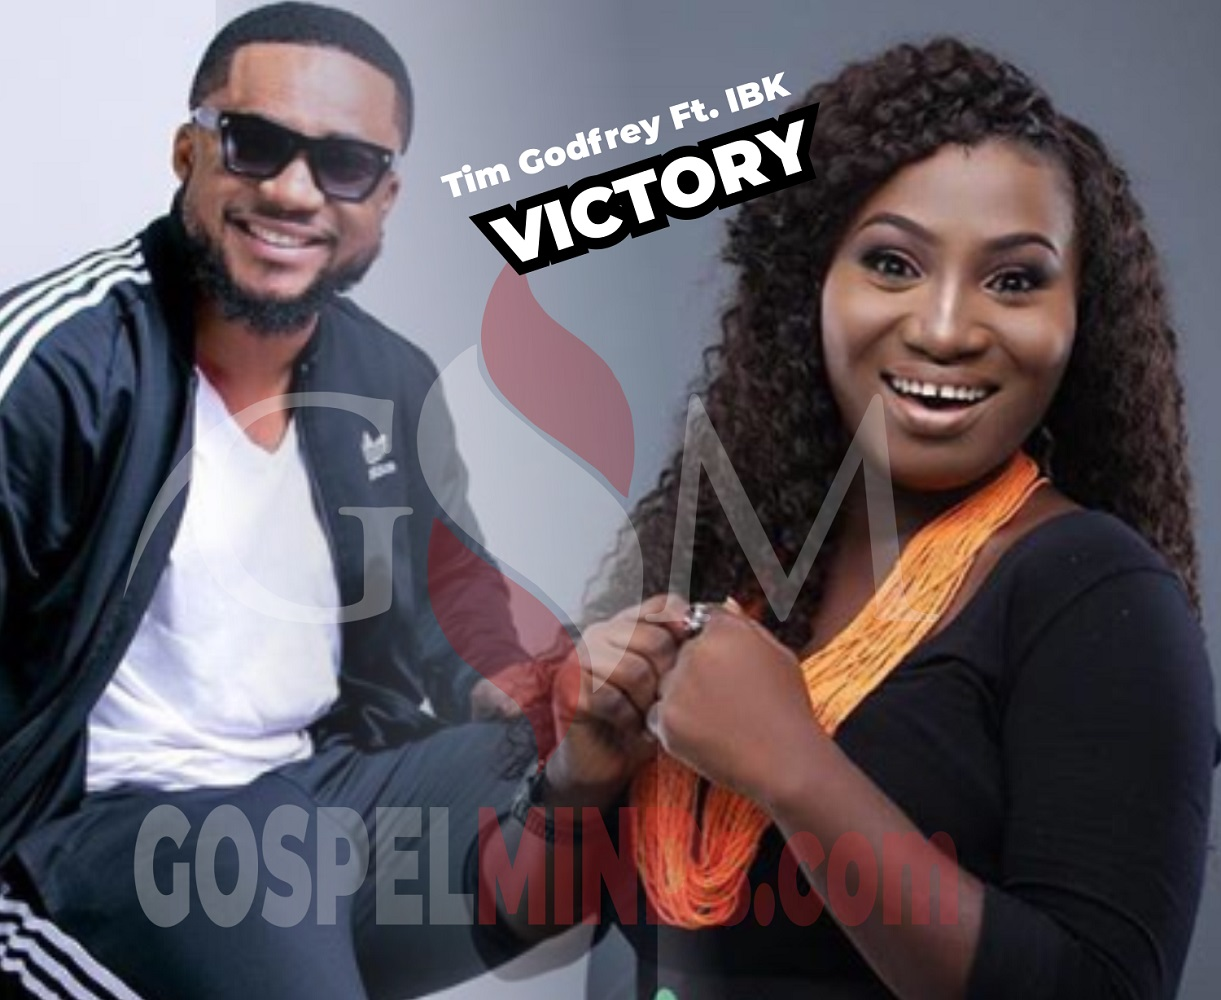 Tim Godfrey - Victory Ft. IBK